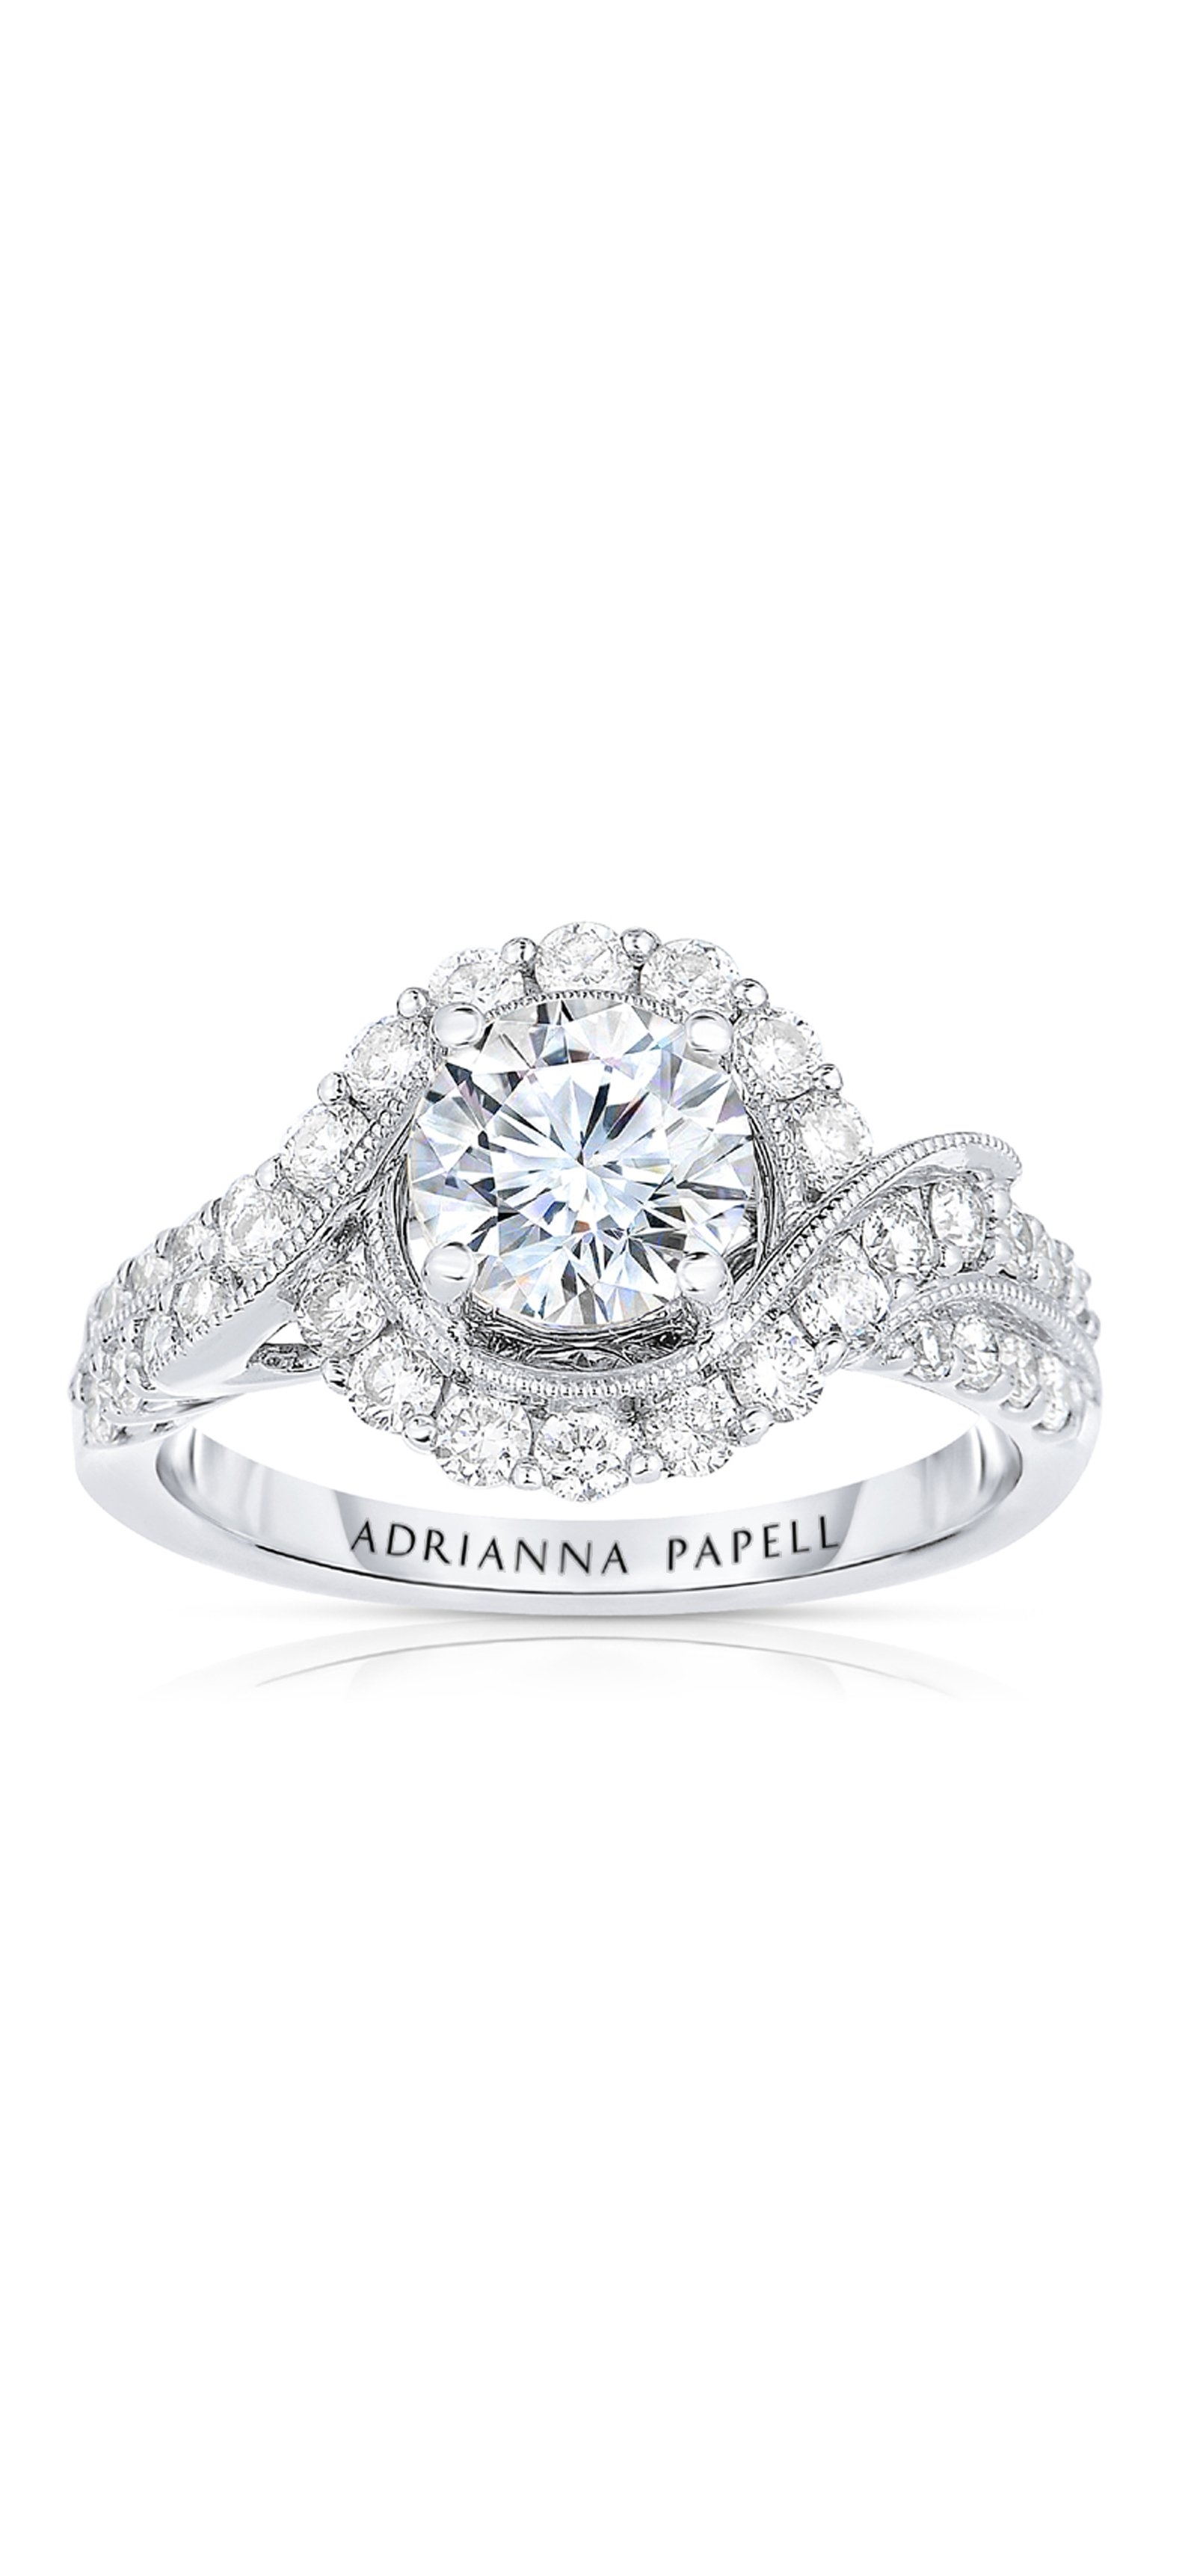 Diamond Engagement Ring Collection In Partnership With Zales Outlet For Latest Oval Diamond Double Frame Twist Vintage Style Bridal Rings In 14k White Gold (View 13 of 15)